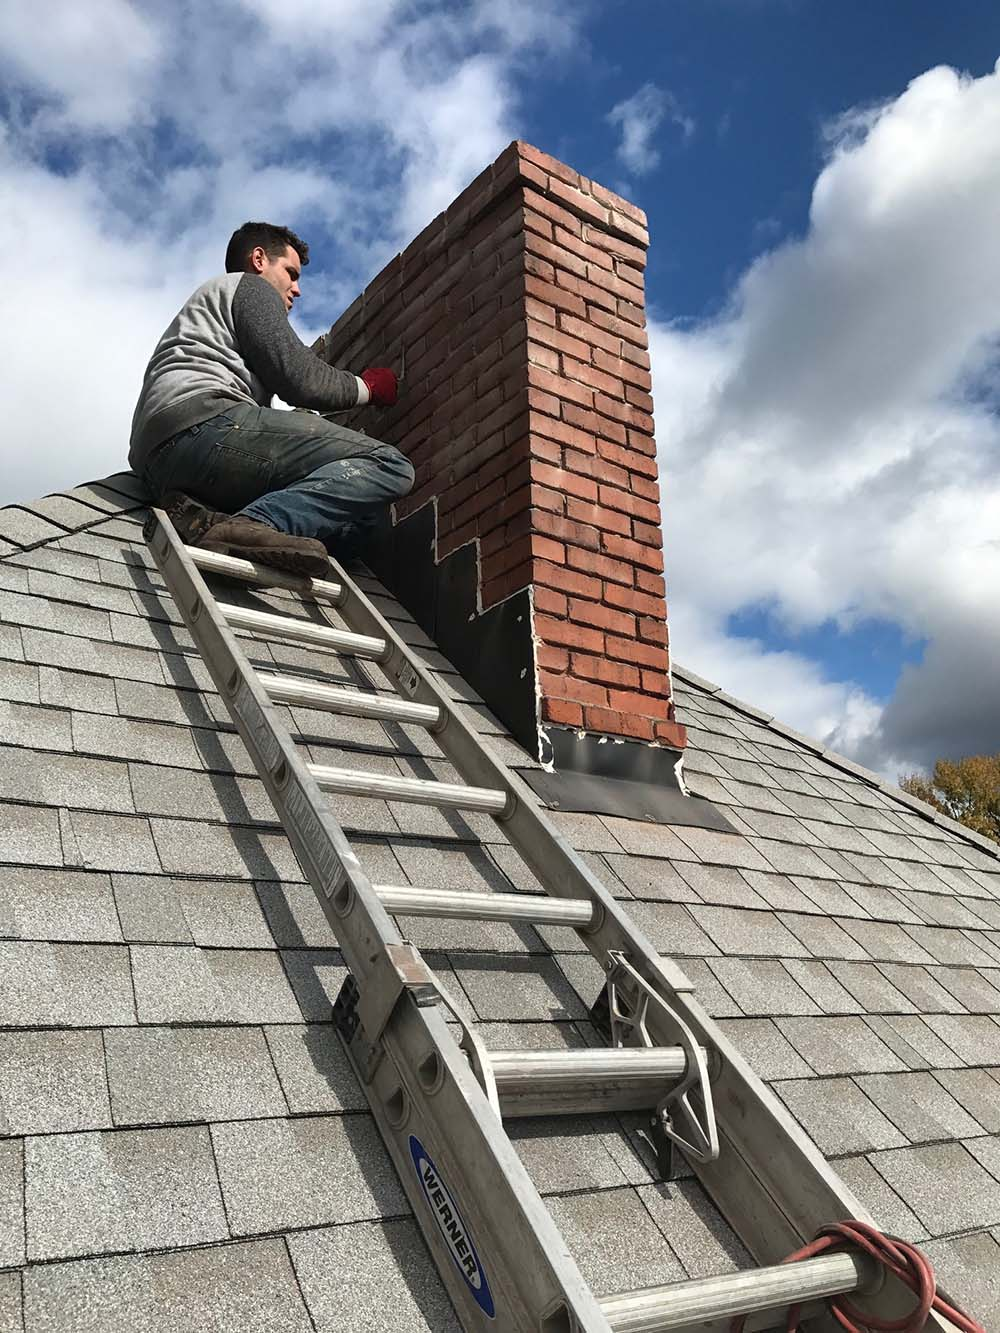 How to remove a chimney -  But Home And Building Owners Must Understand That Deep Water Stains Or Stains Deep Into The Surface May Be Impossible To Completely Remove